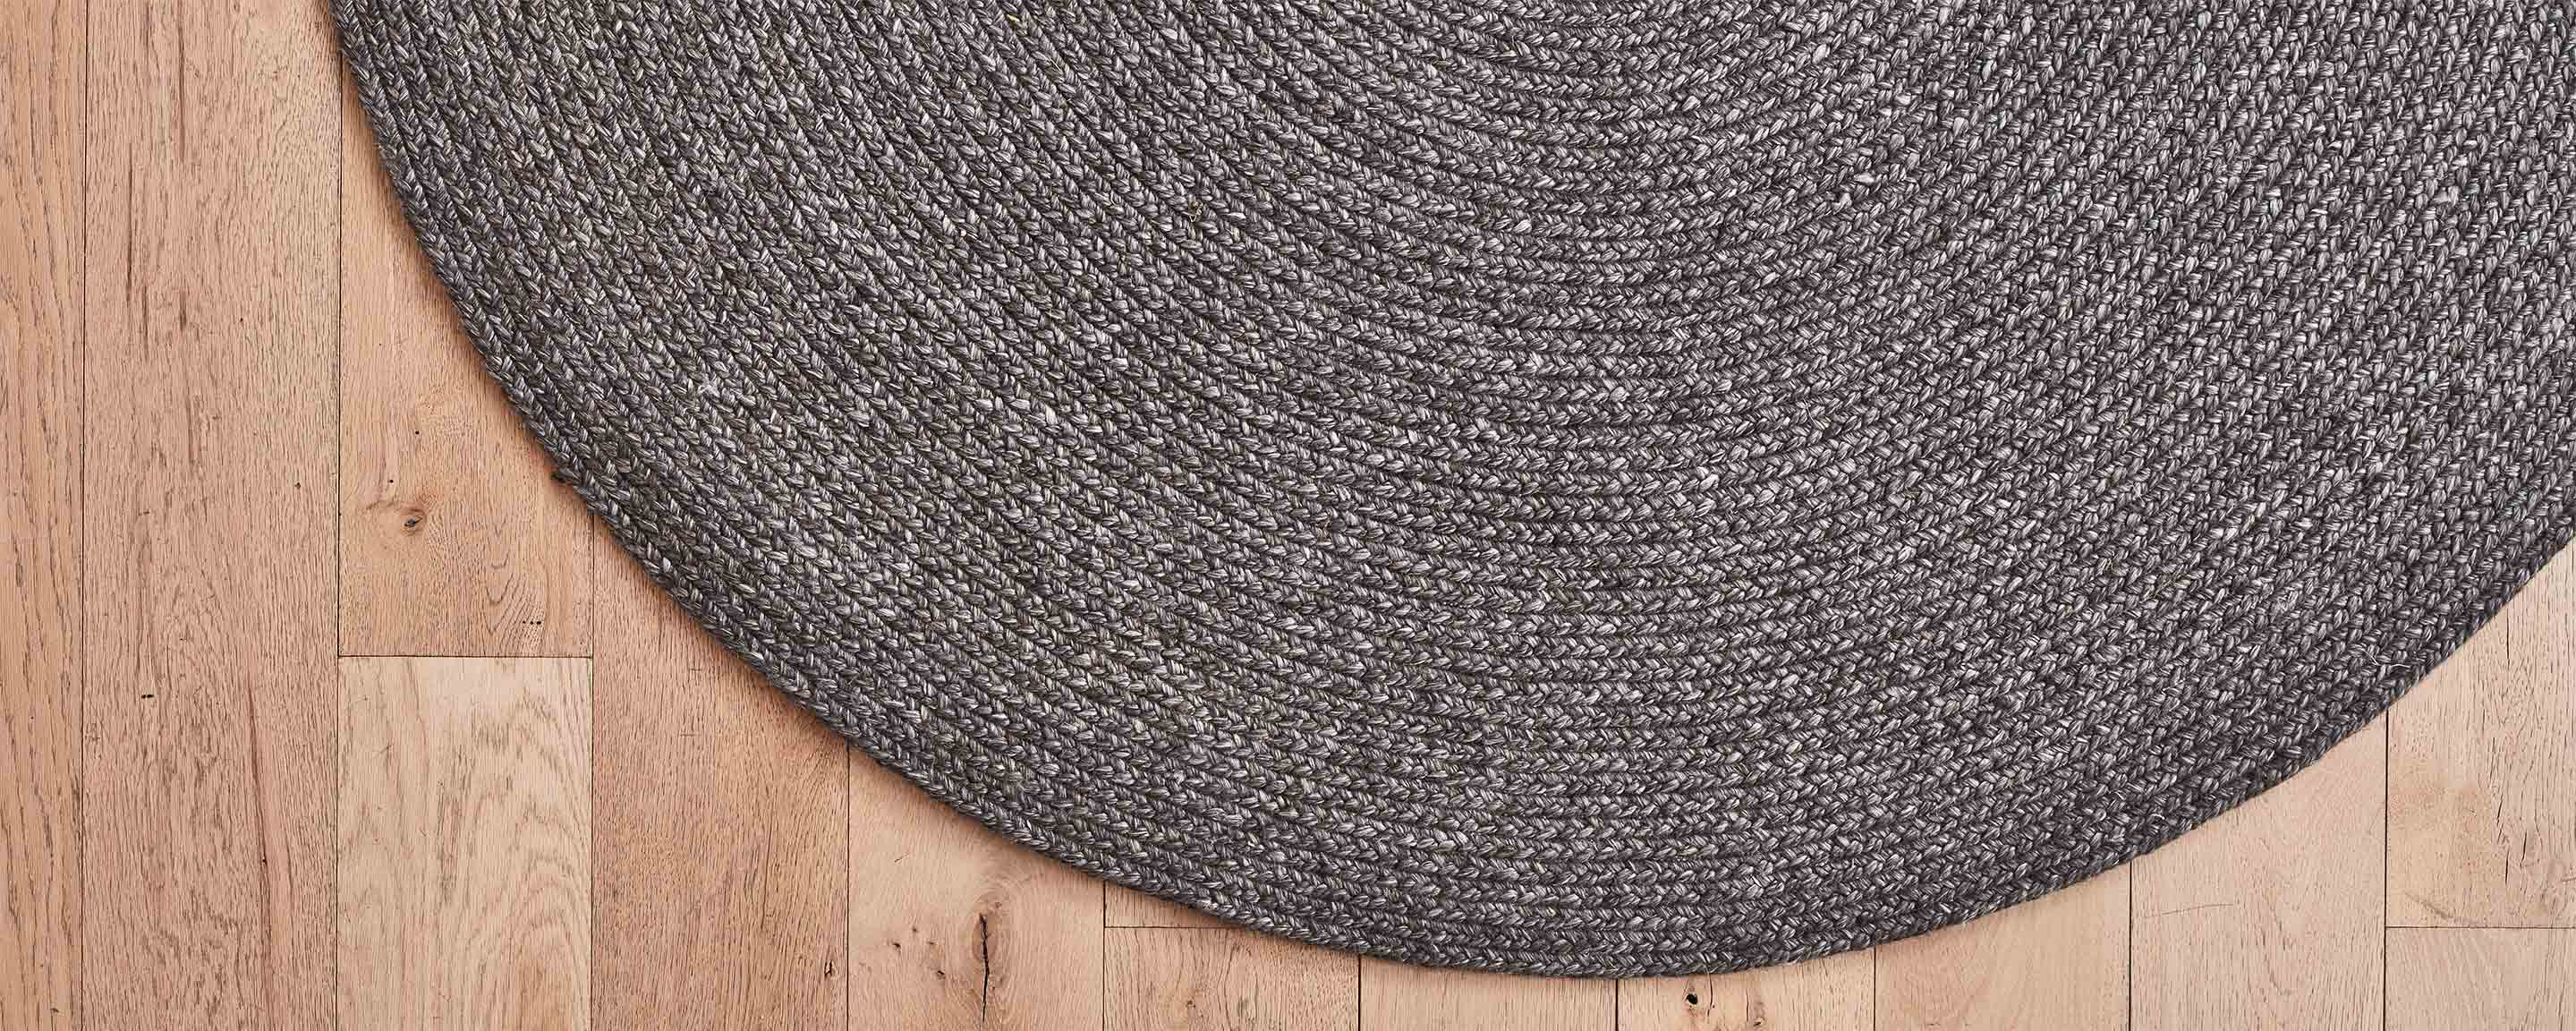 braided weave charcoal area rugs